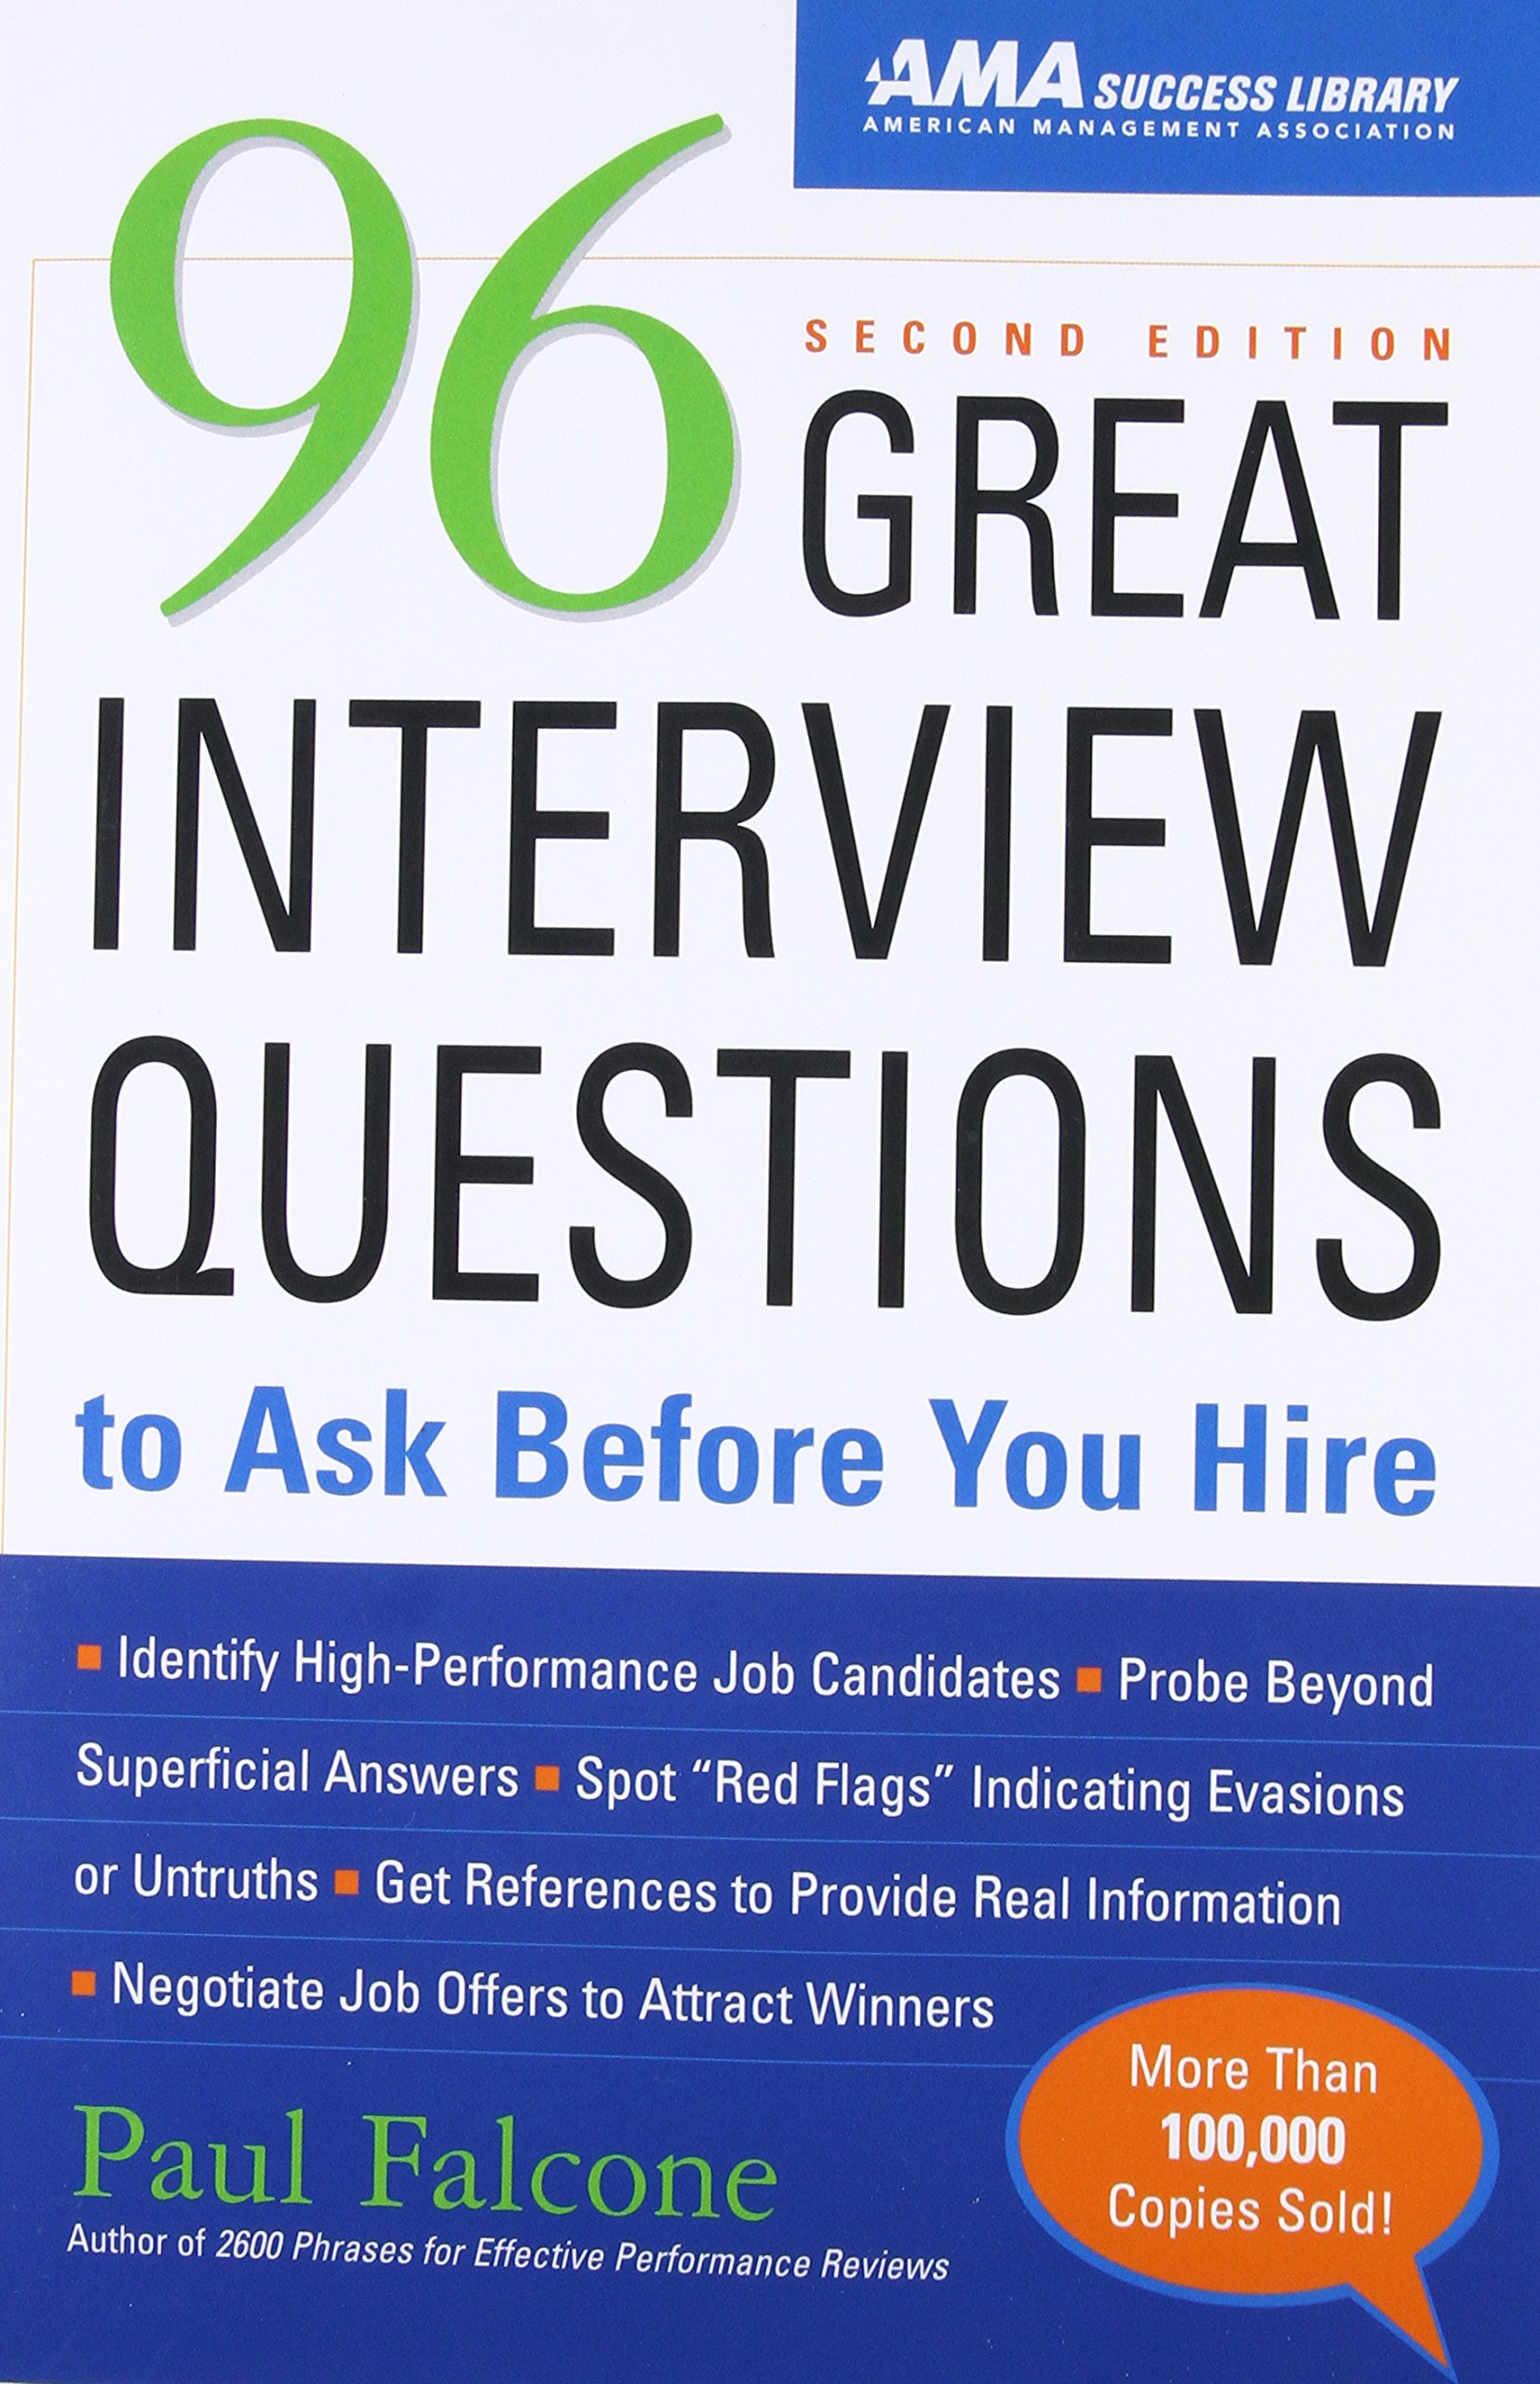 96 great interview questions to ask before you hire paul falcone 8601400099919 amazoncom books - Library Assistant Interview Questions And Answers